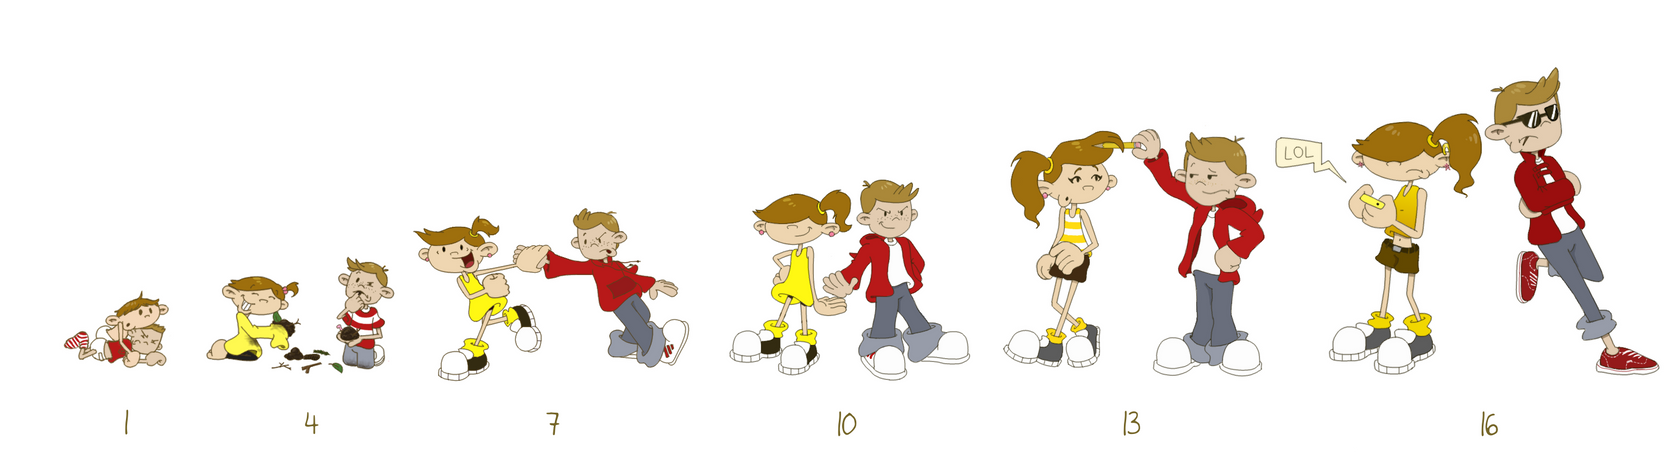 A Timeline of Friendship by man5ray